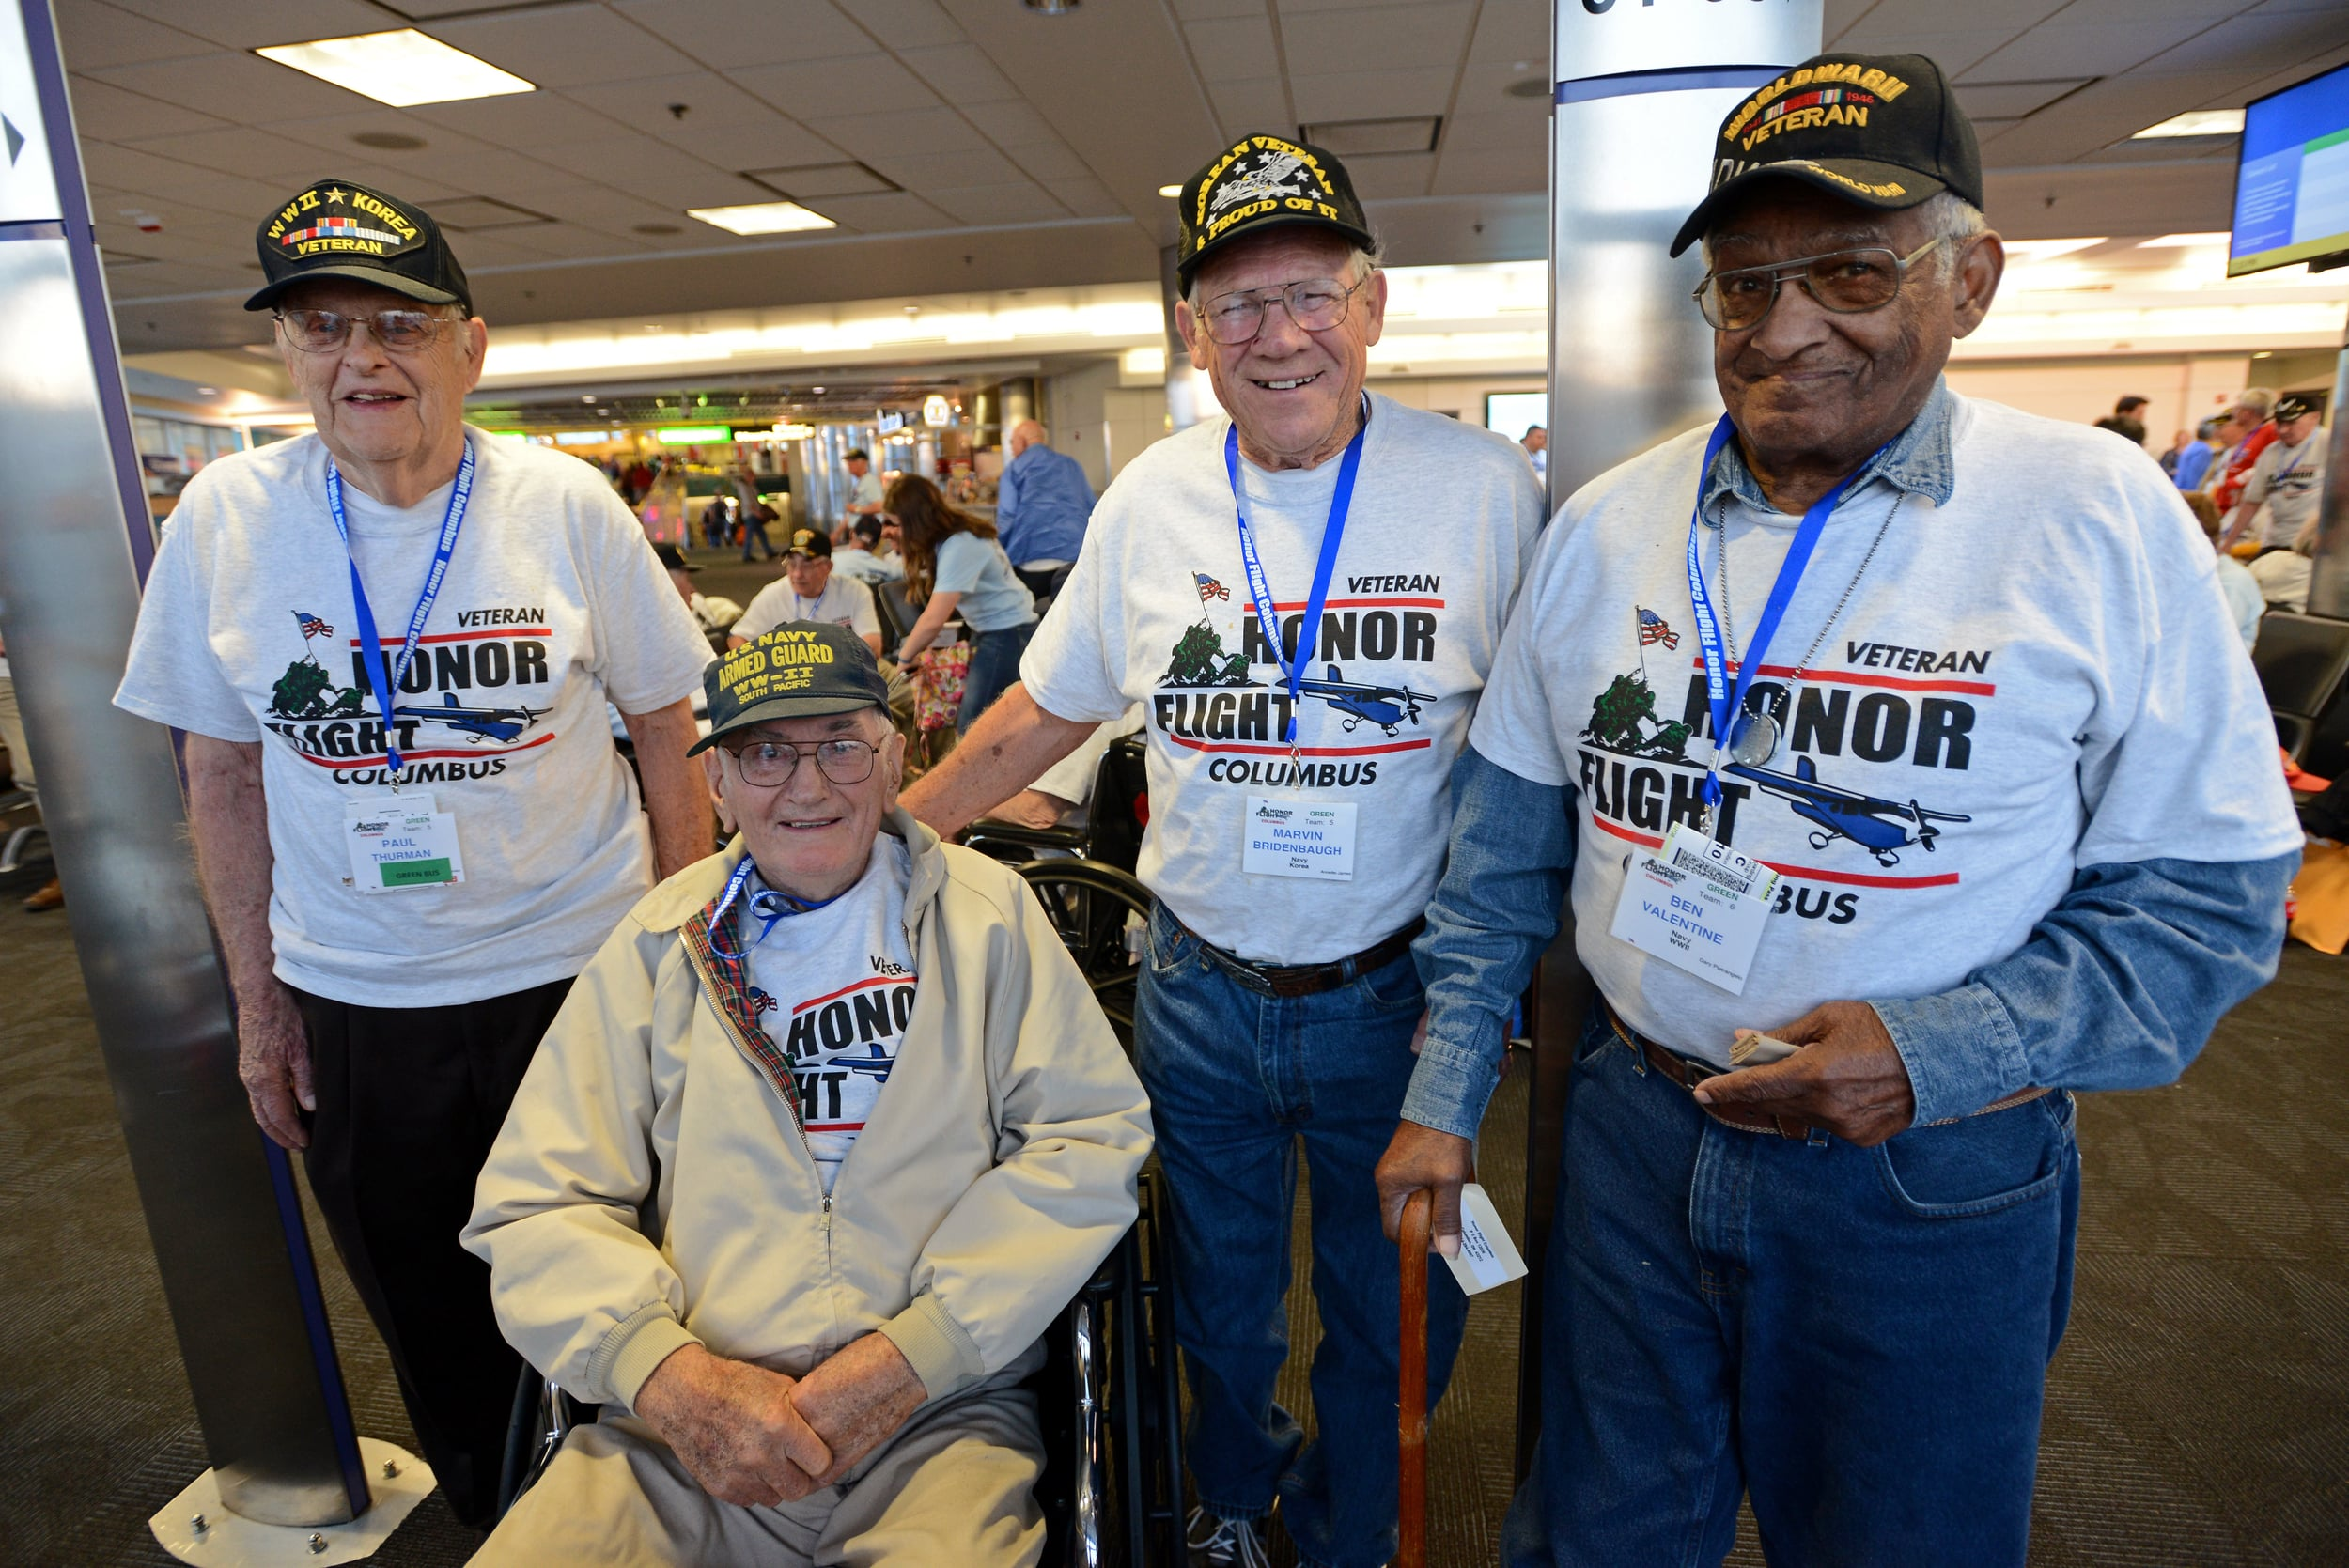 Four veterans from Ross County went on an Honor Flight together with 80 other veterans on Saturday, April 18 to Washington D.C. From Chillicothe are, from left, World War II and Korean War Navy veteran Paul Thurman, World War II Navy veteran Ken Houseman, Korean War Navy veteran Marvin Bridenbaugh and World War II Navy veteran Ben Valentine of Kingston.